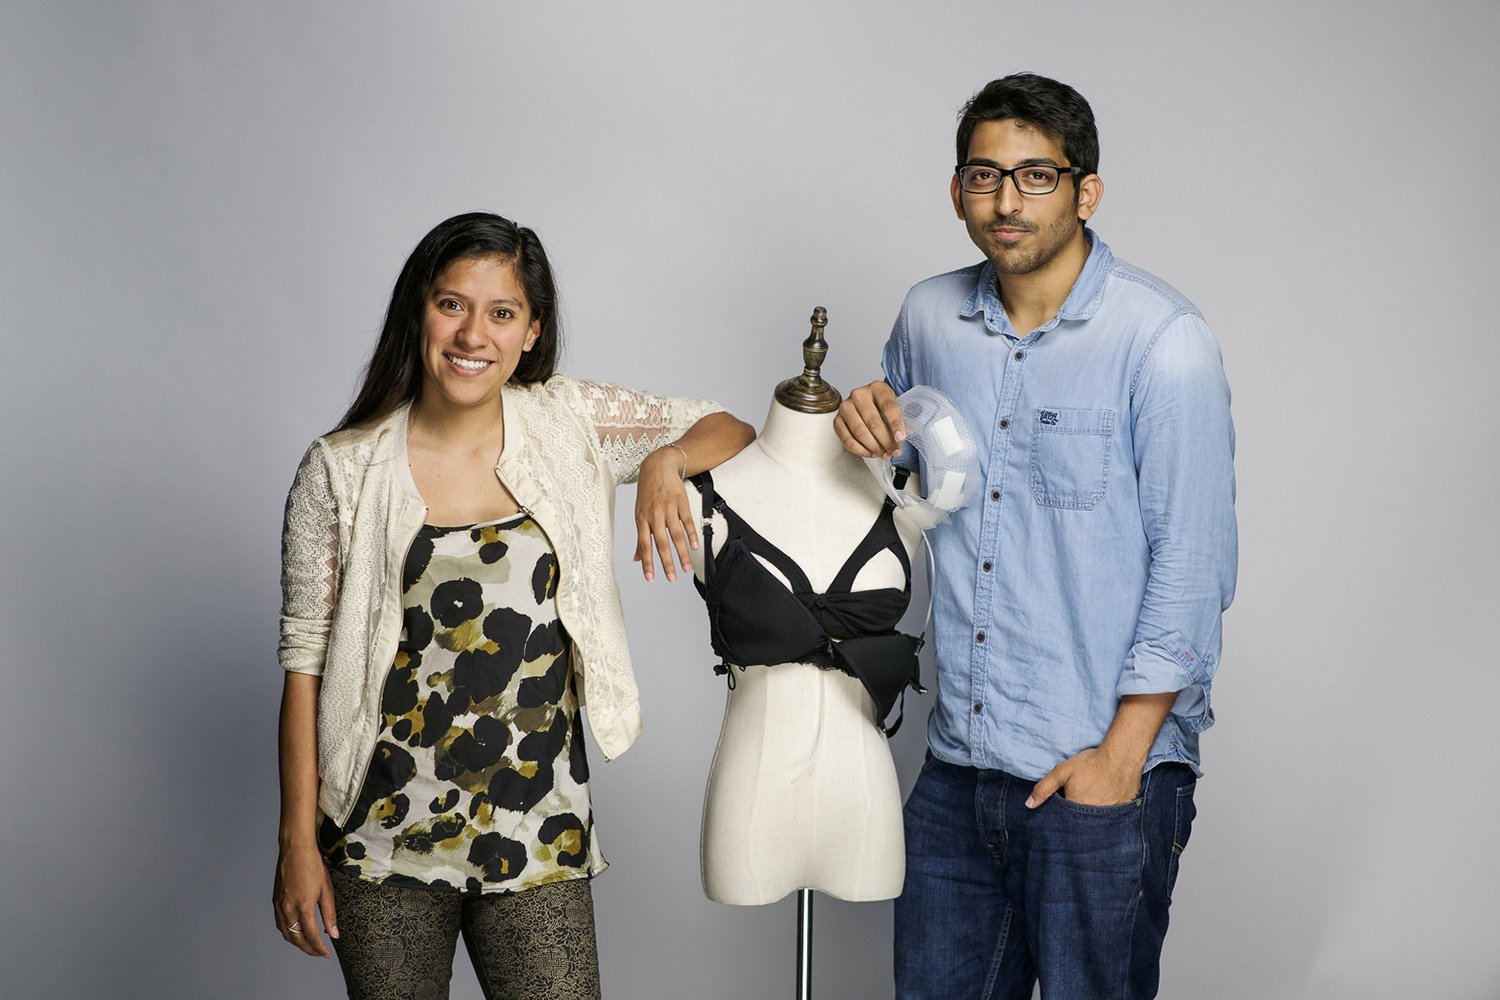 Lilu founders Adriana C. Vazquez Ortiz '11 and Sujay Suresh Photo courtesy of Lilu.